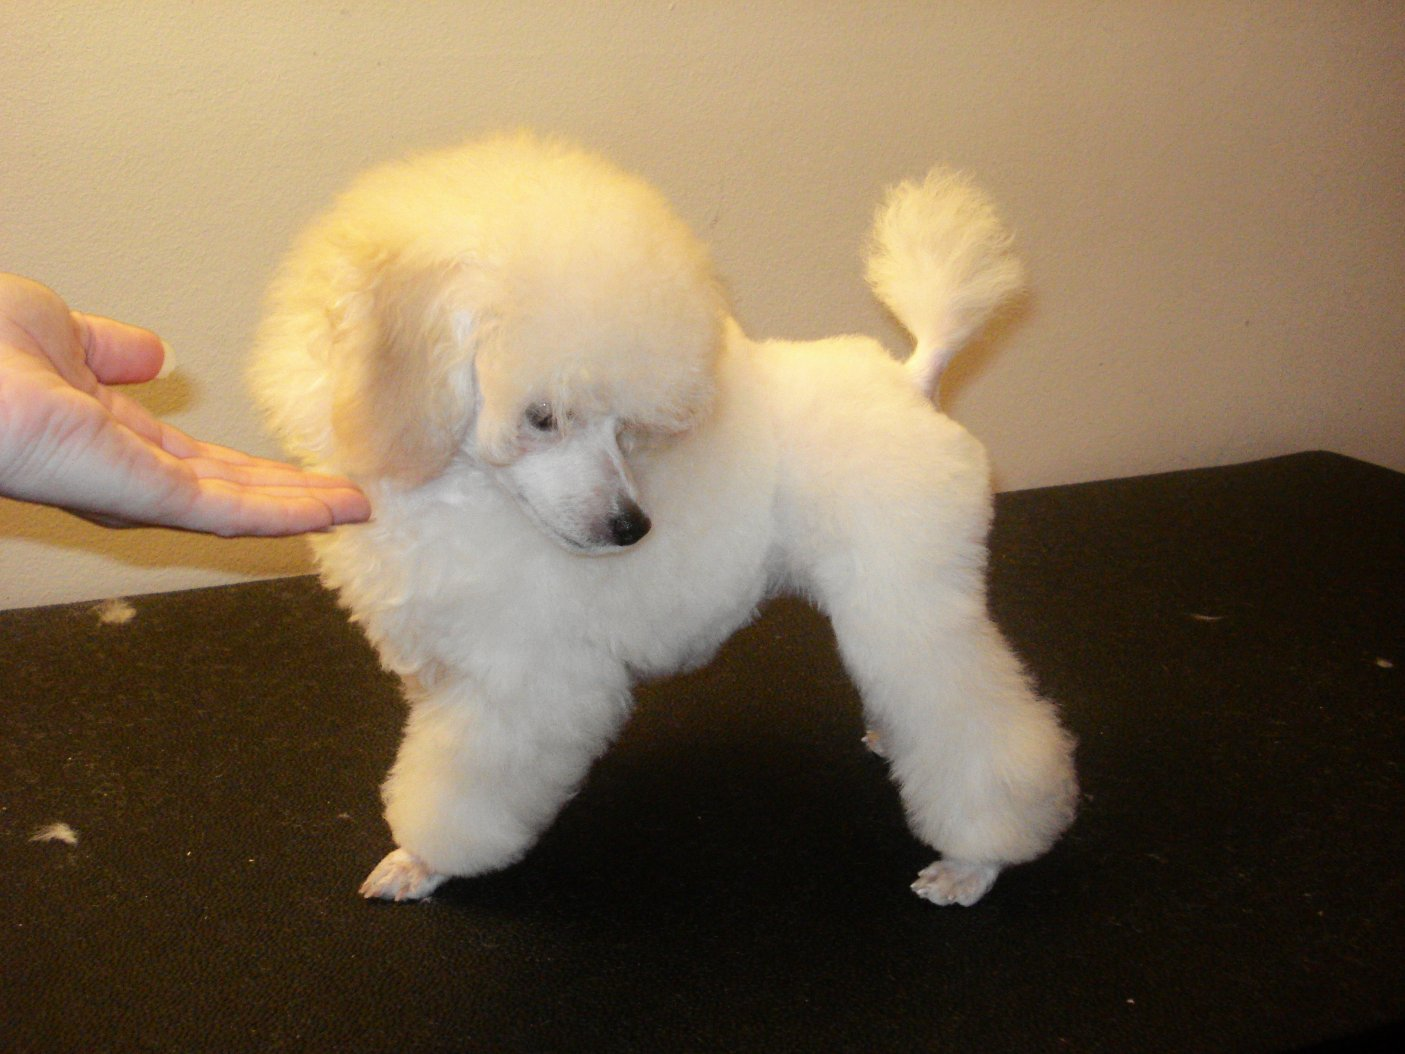 Teacup Poodle Haircuts Dress The Dog Clothes For Your Pets